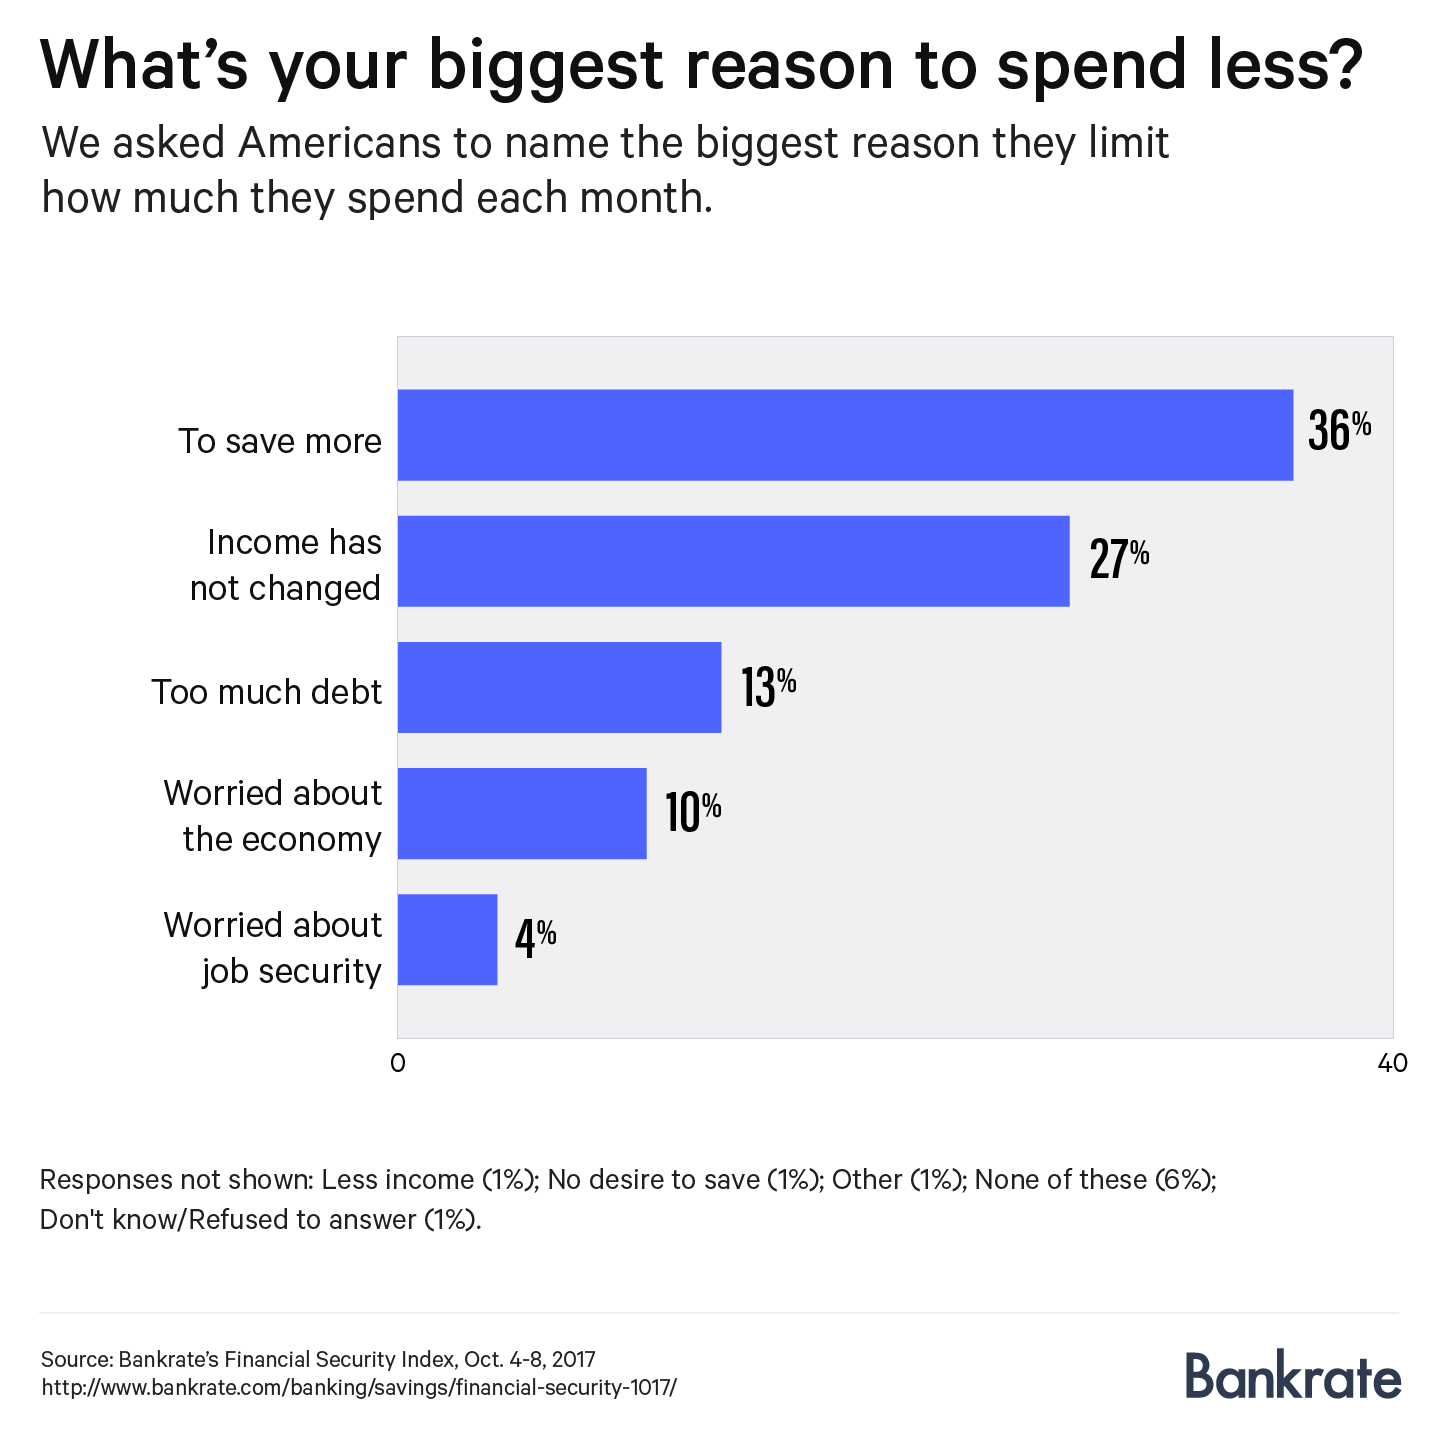 Financial Security Index Survey, Bankrate